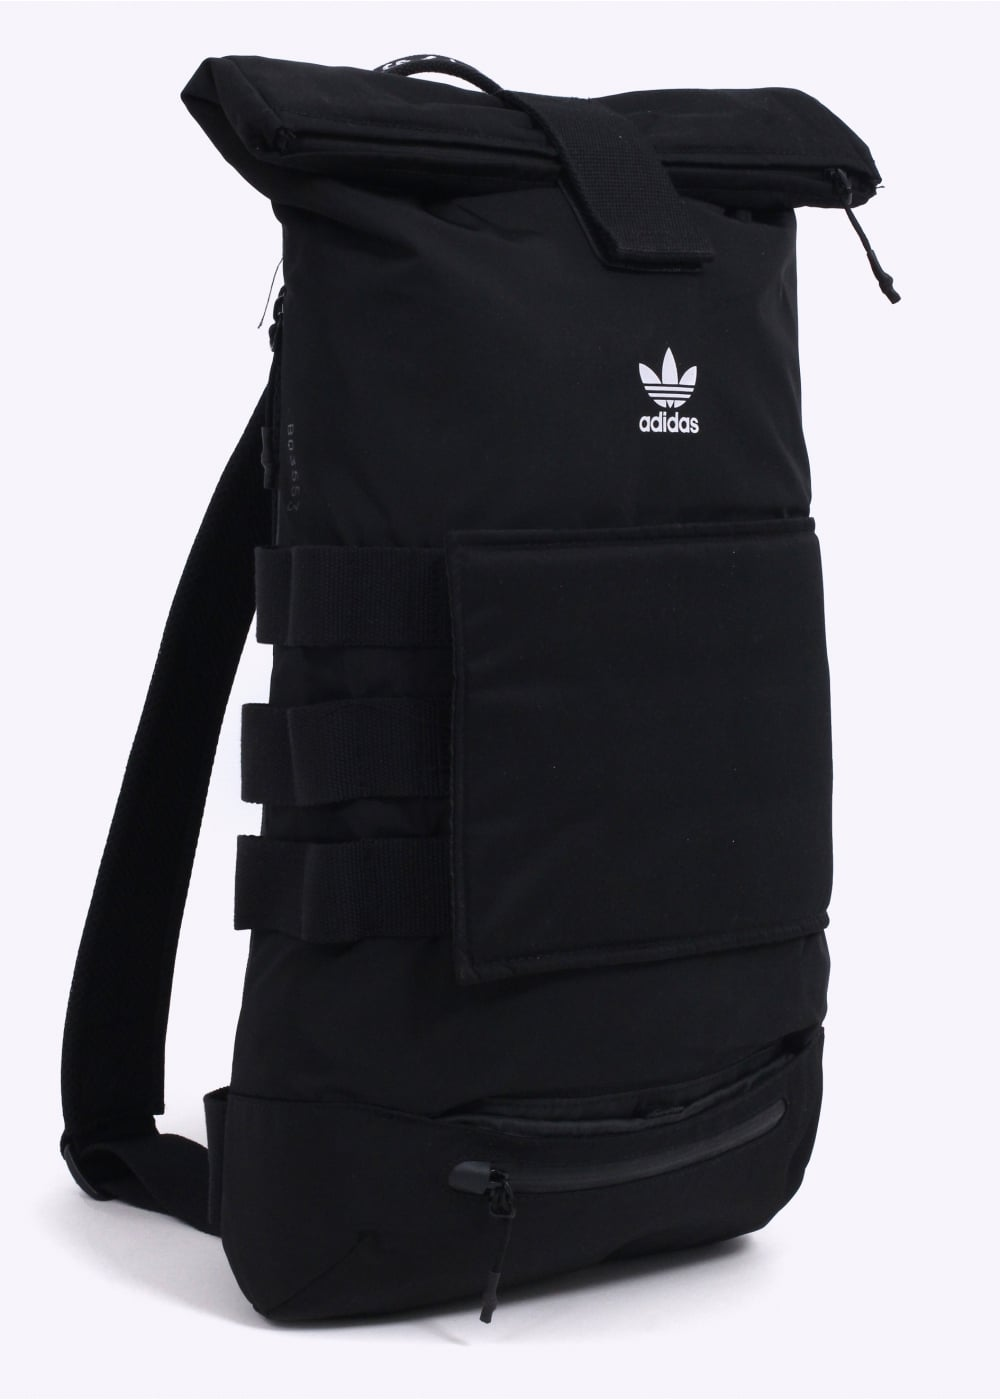 adidas Originals Apparel Rollup Backpack - Black - Bags from Triads UK 04363d0348d08